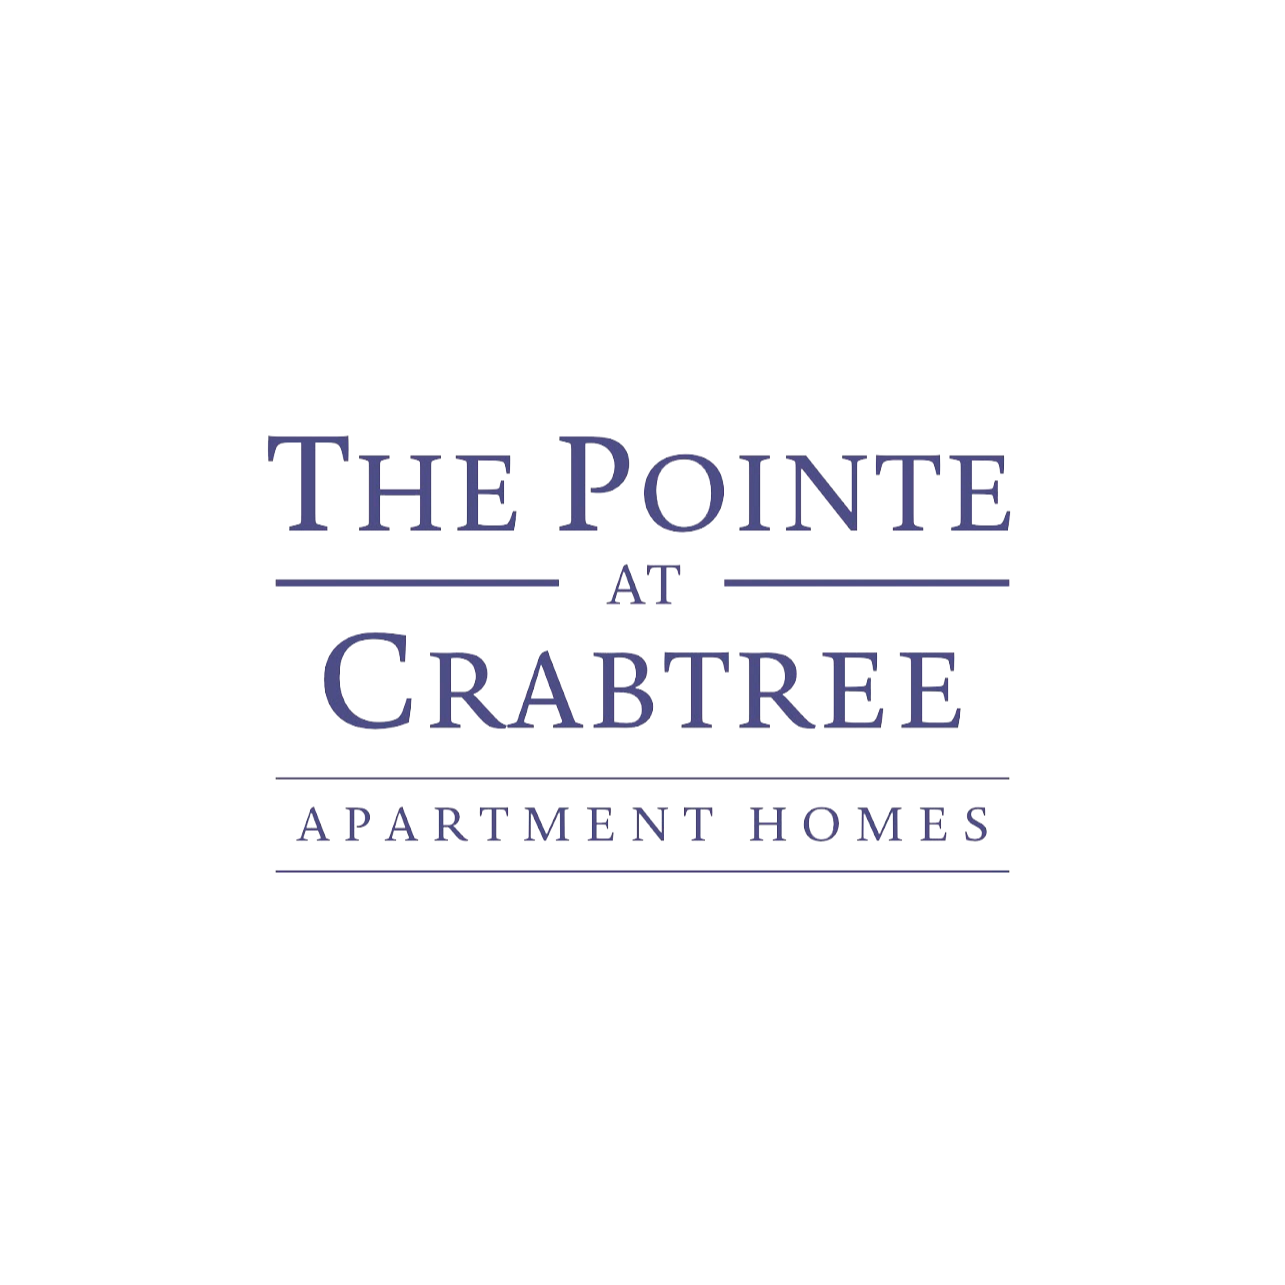 The Pointe At Crabtree